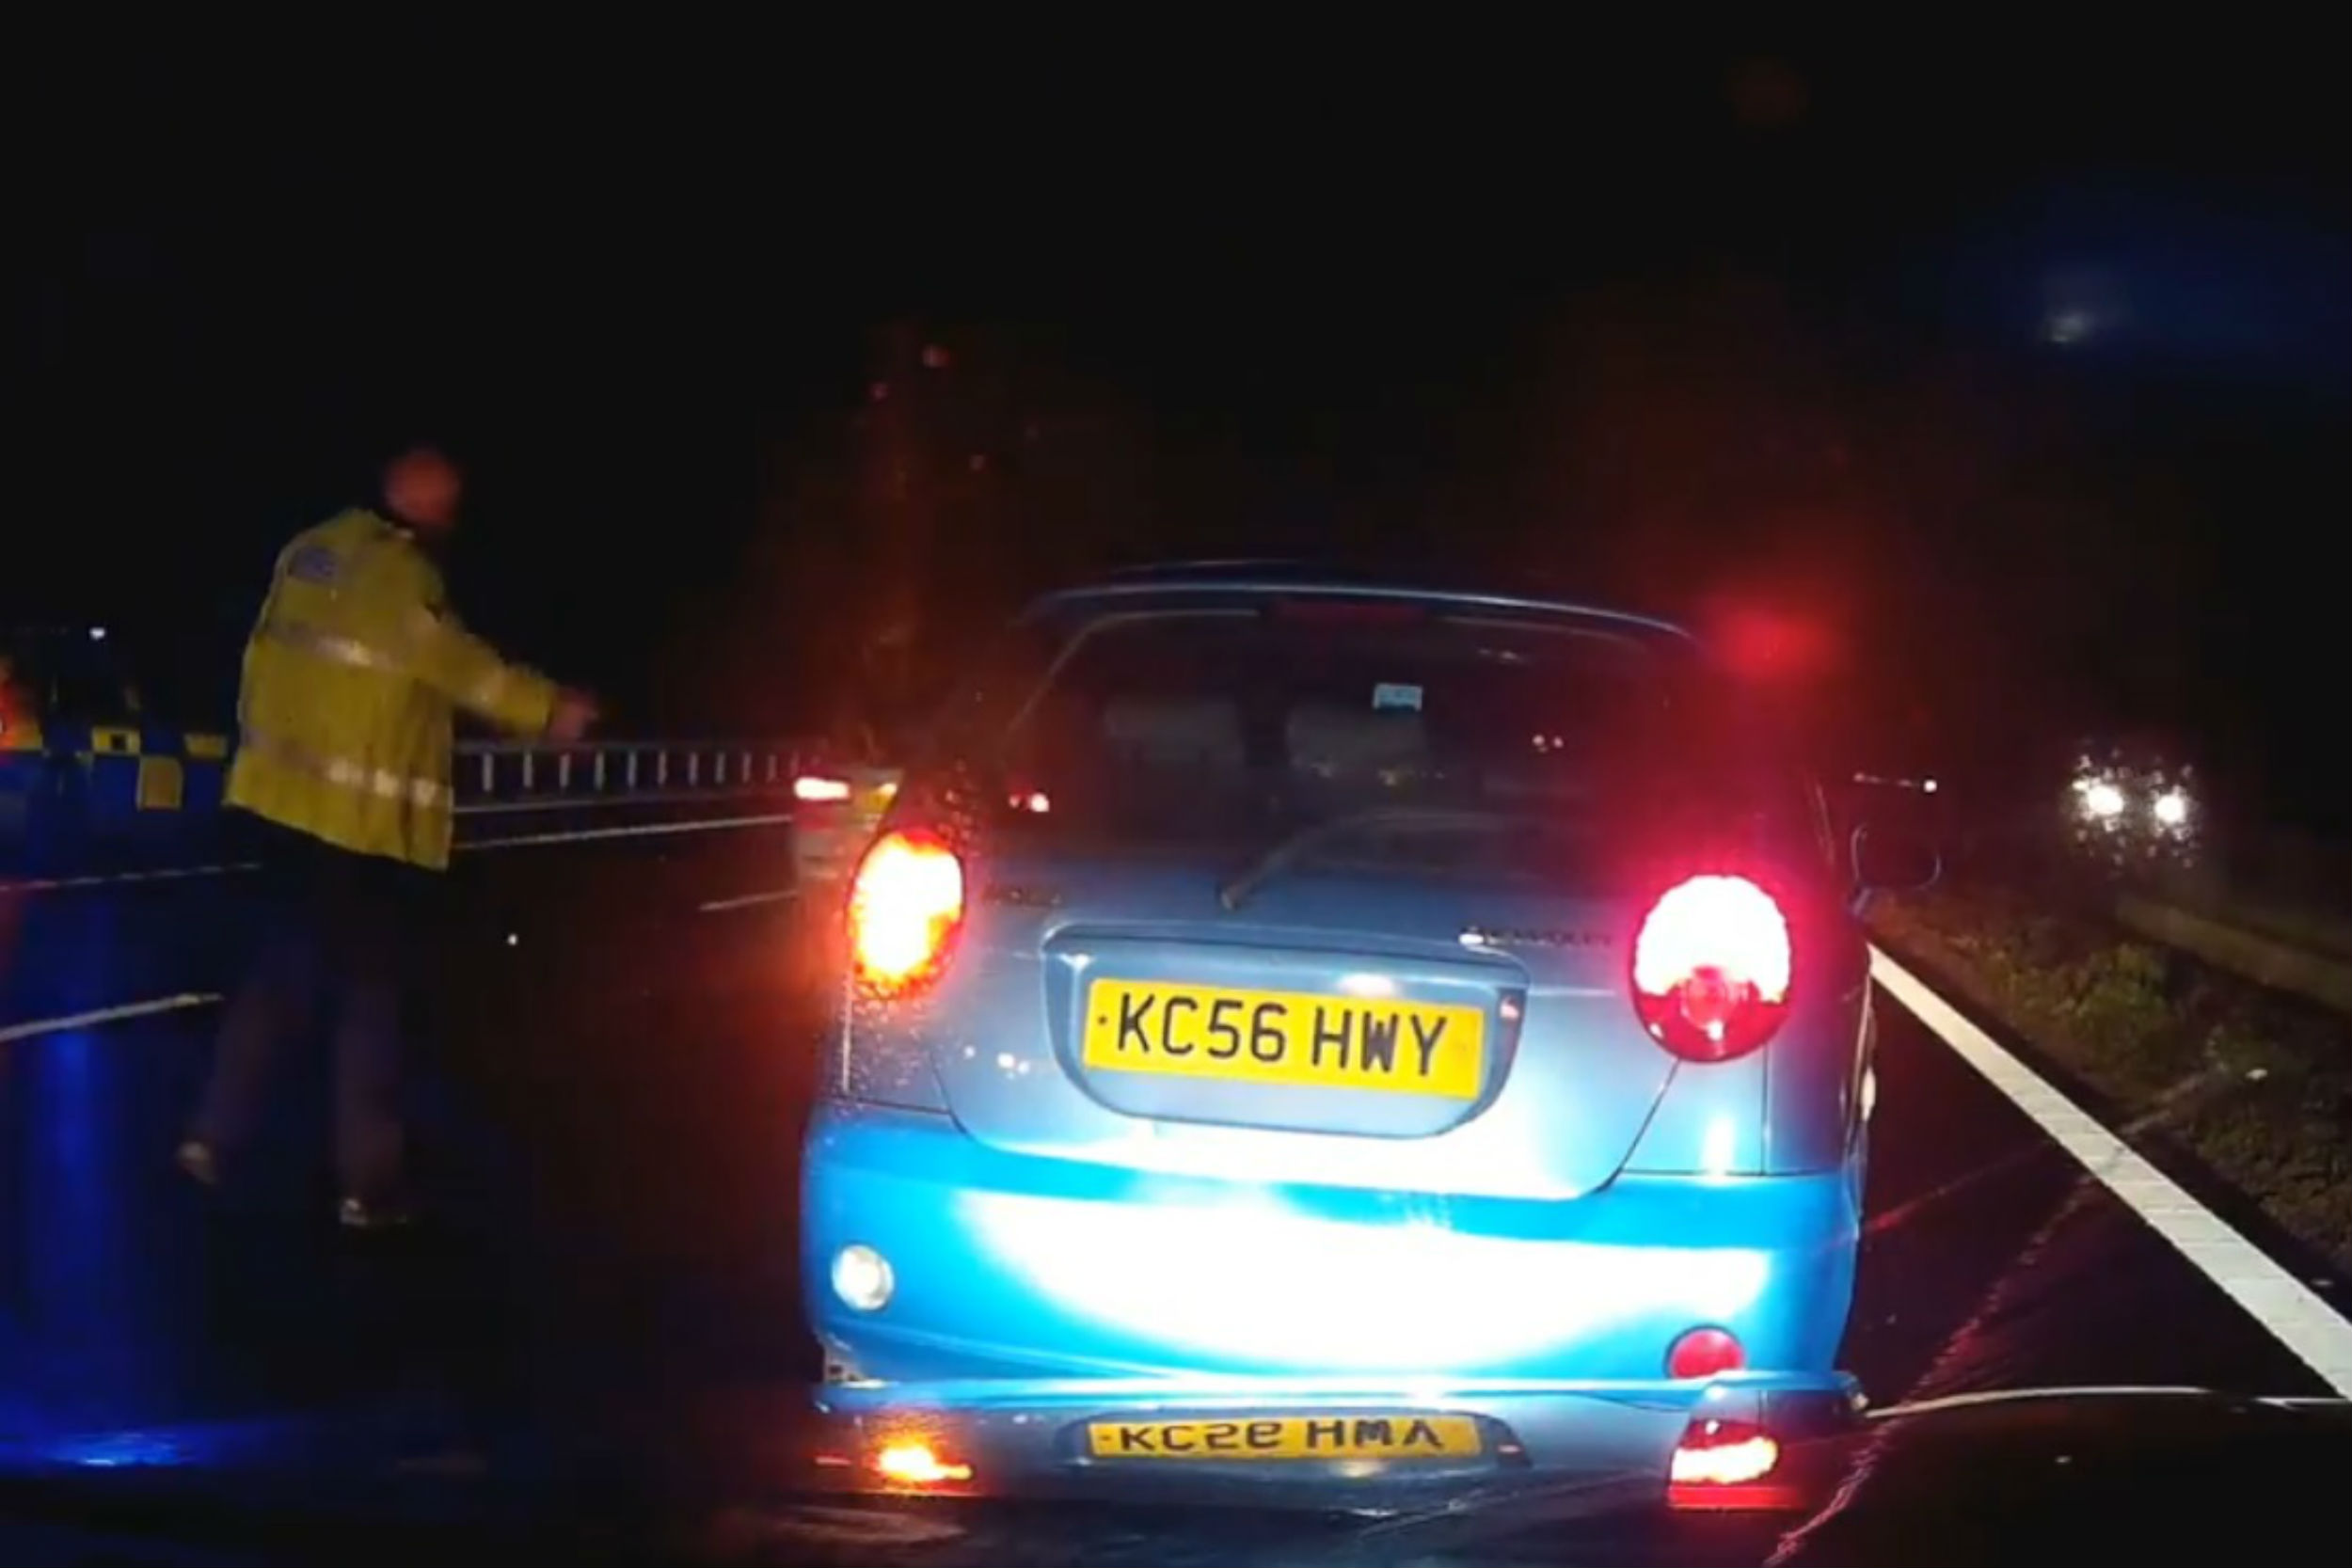 Shocking moment car pulled over by police stops - in lane